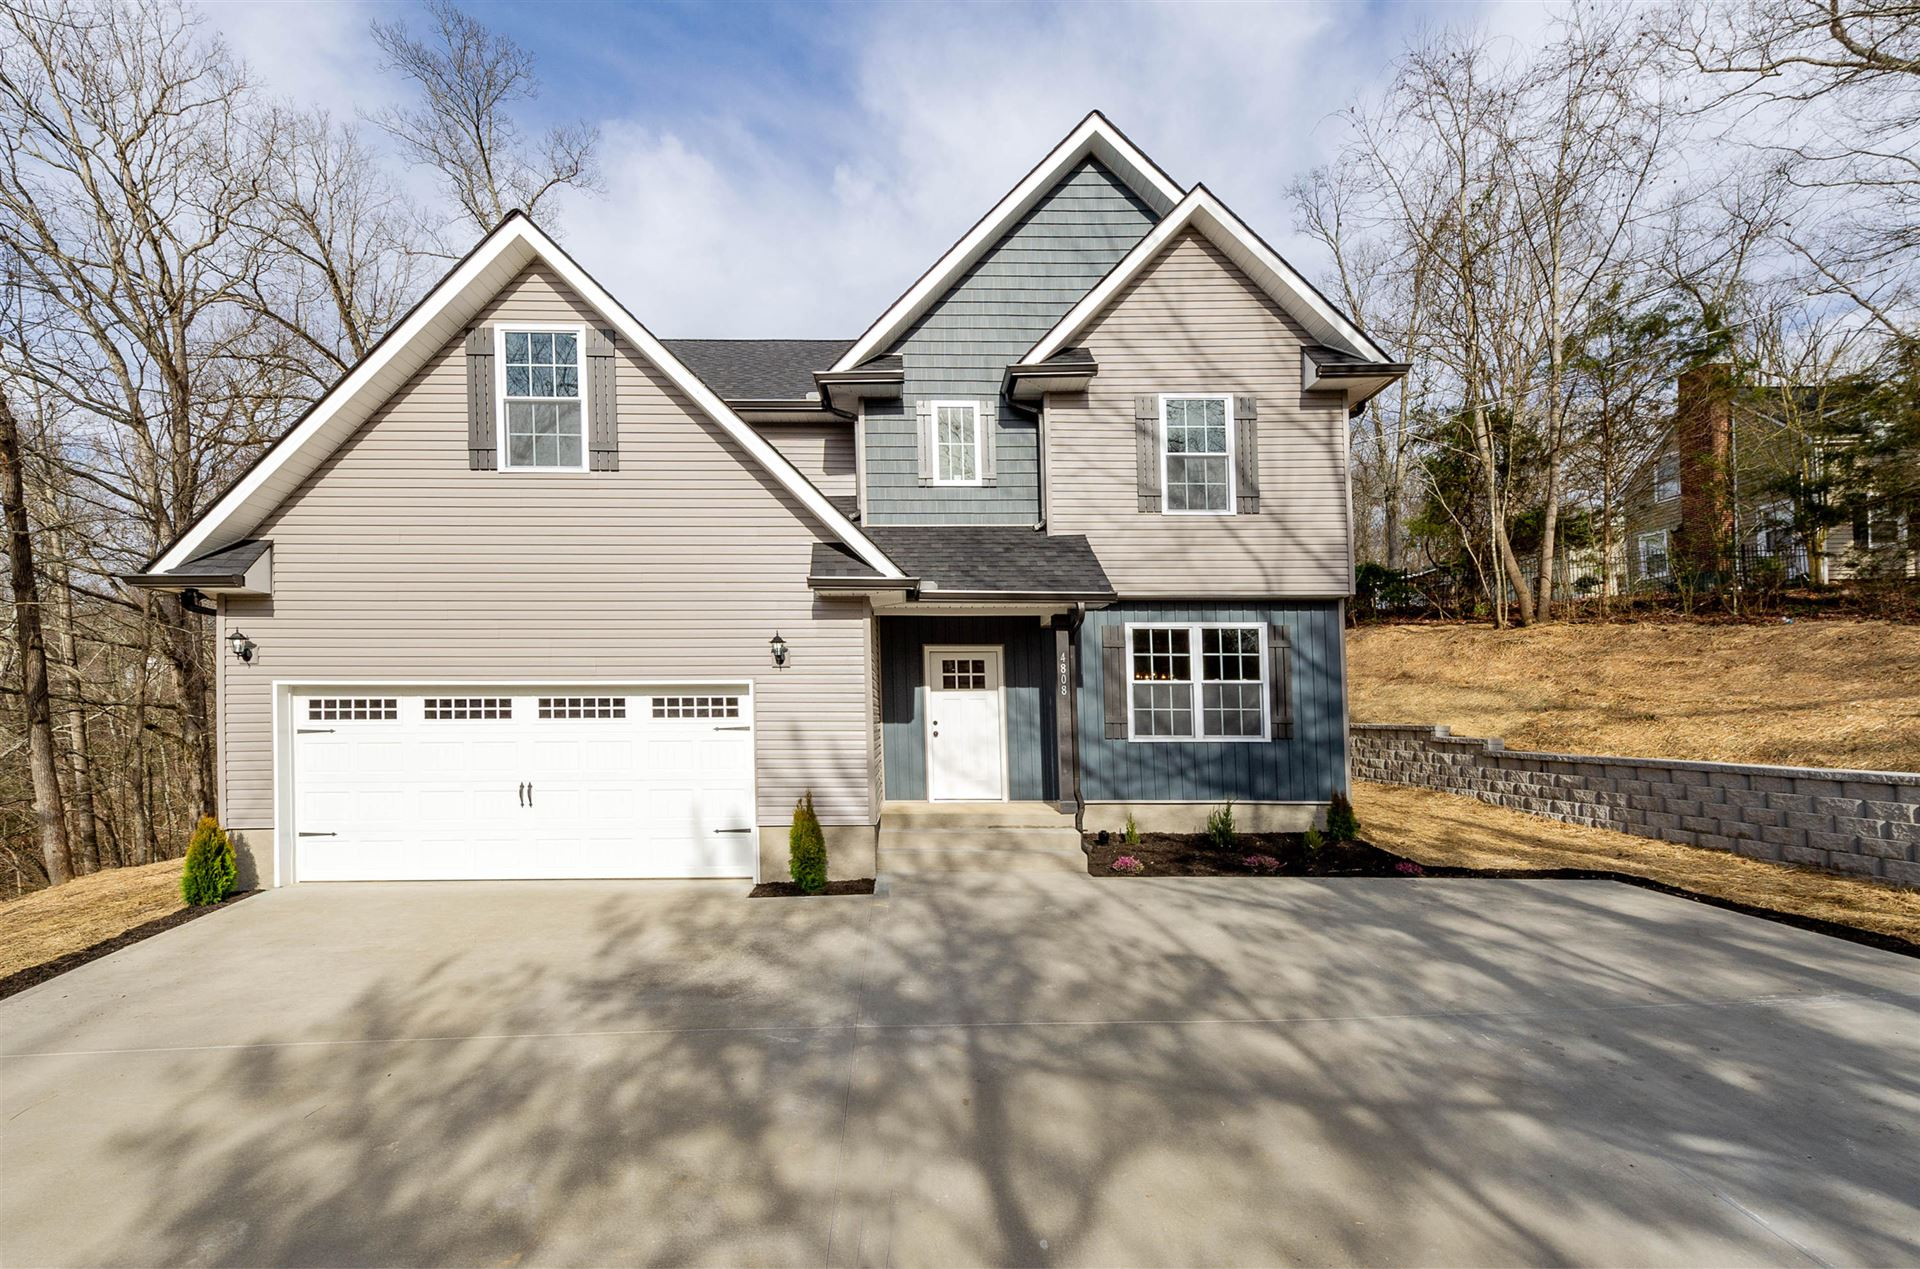 Photo of 4808 Cain Rd, Knoxville, TN 37921 (MLS # 1108265)